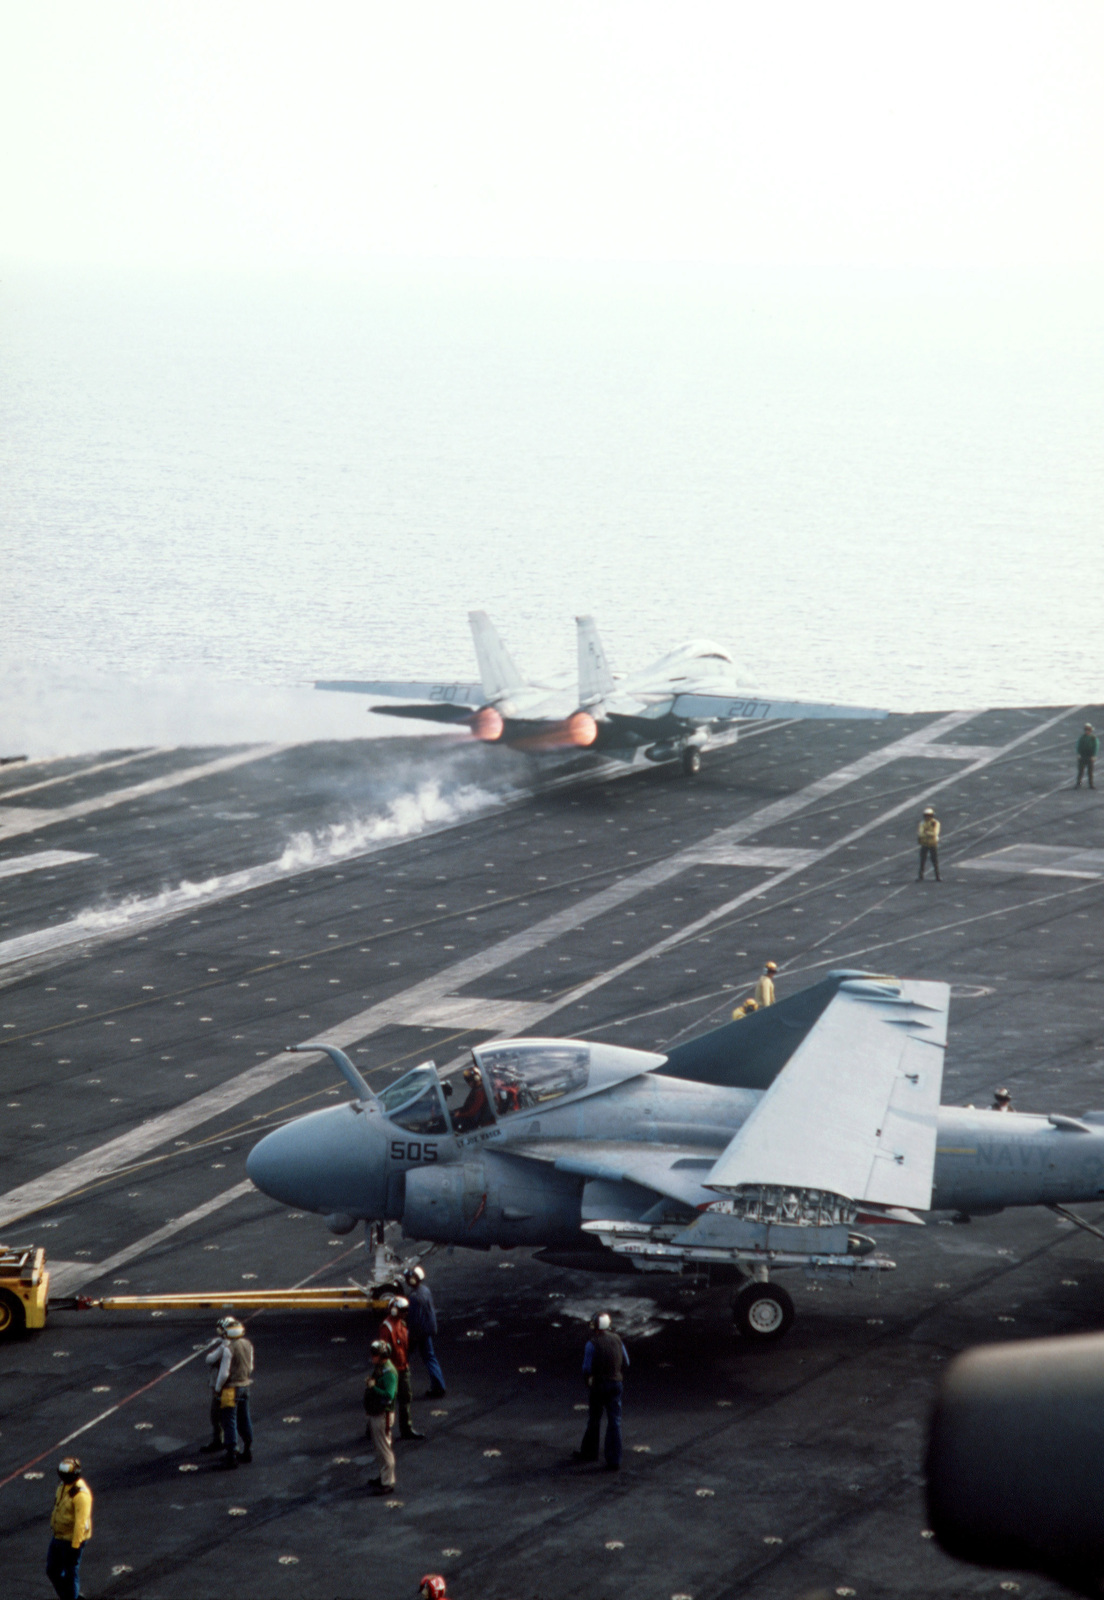 A Fighter Squadron 32 (VF-32) F-14A Tomcat aircraft is launched from the aircraft carrier USS JOHN F. KENNEDY (CV 67) during NATO Exercise DISPLAY DETERMINATION '86. An A-6E Intruder aircraft is being towed by an MD-3A tow tractor